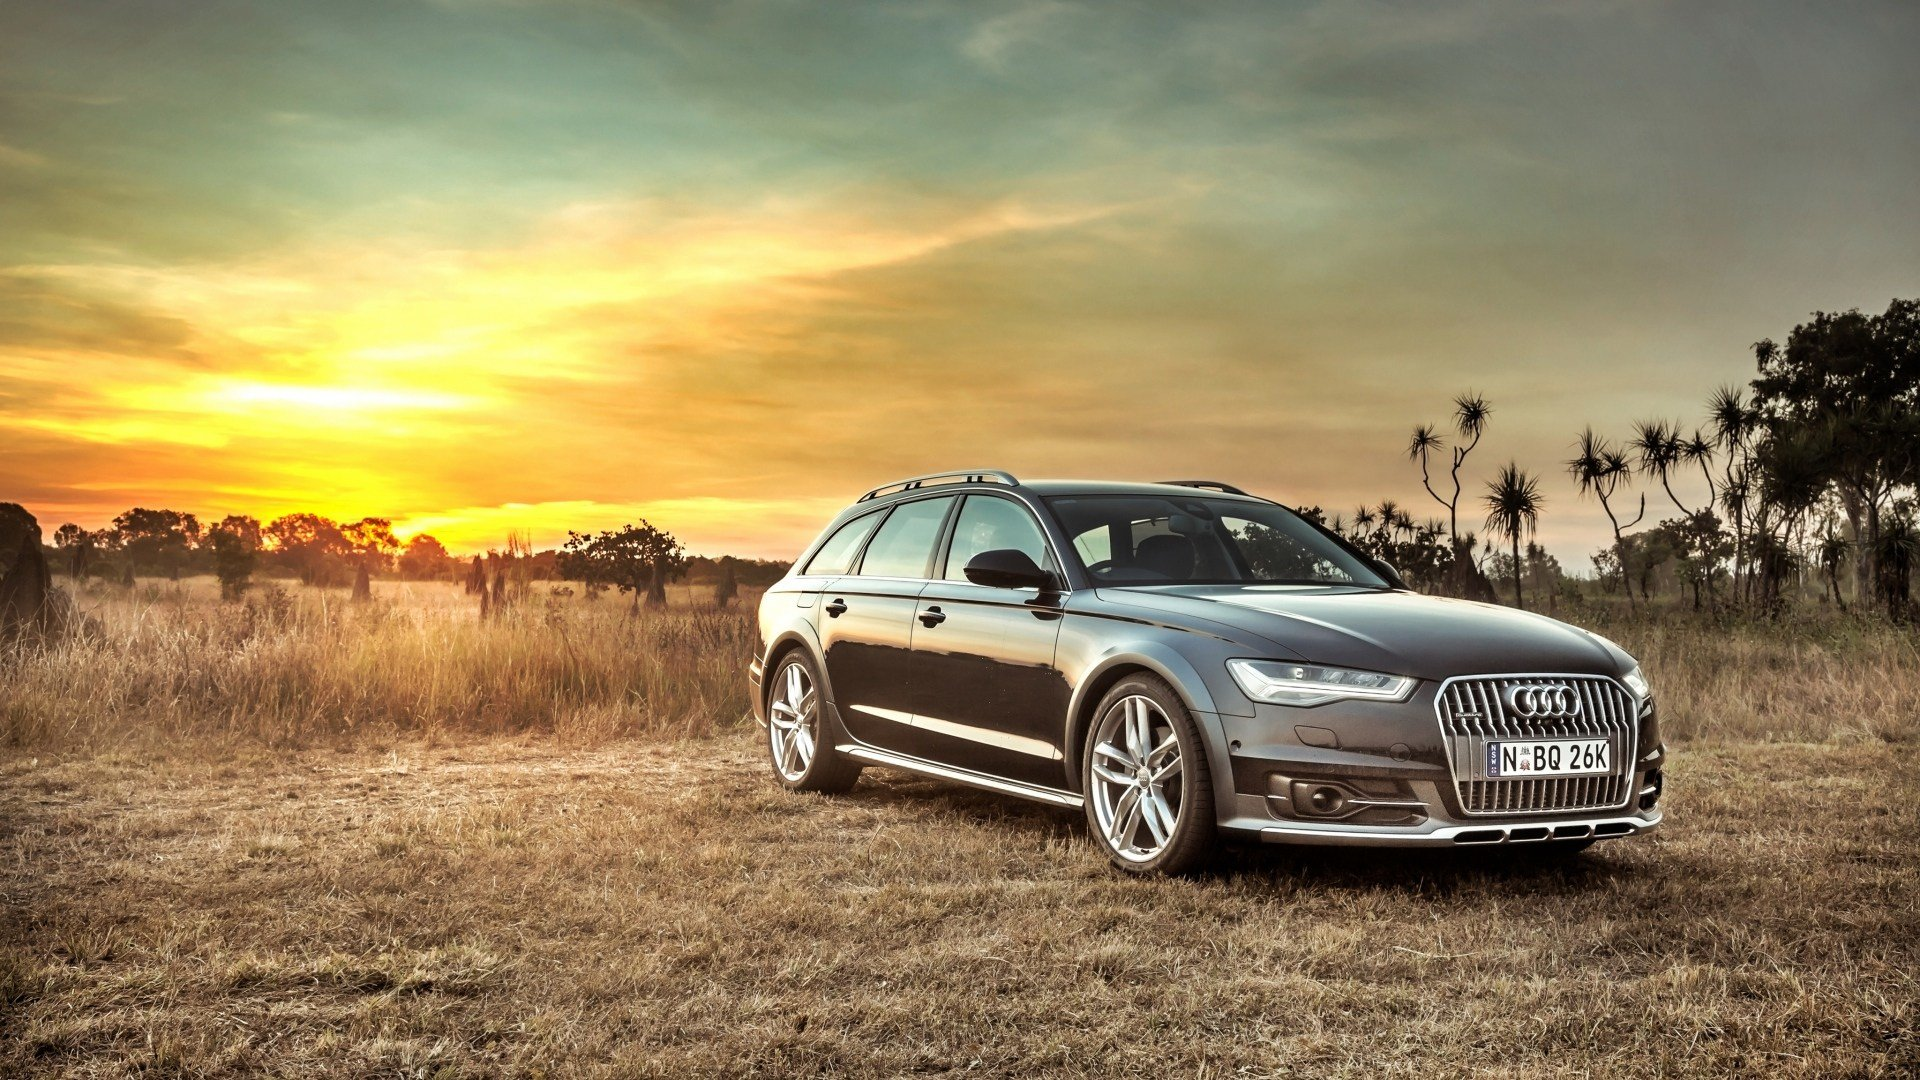 Latest Hd Background Audi A6 Allroad Side View Sunset Hdr Car Free Download